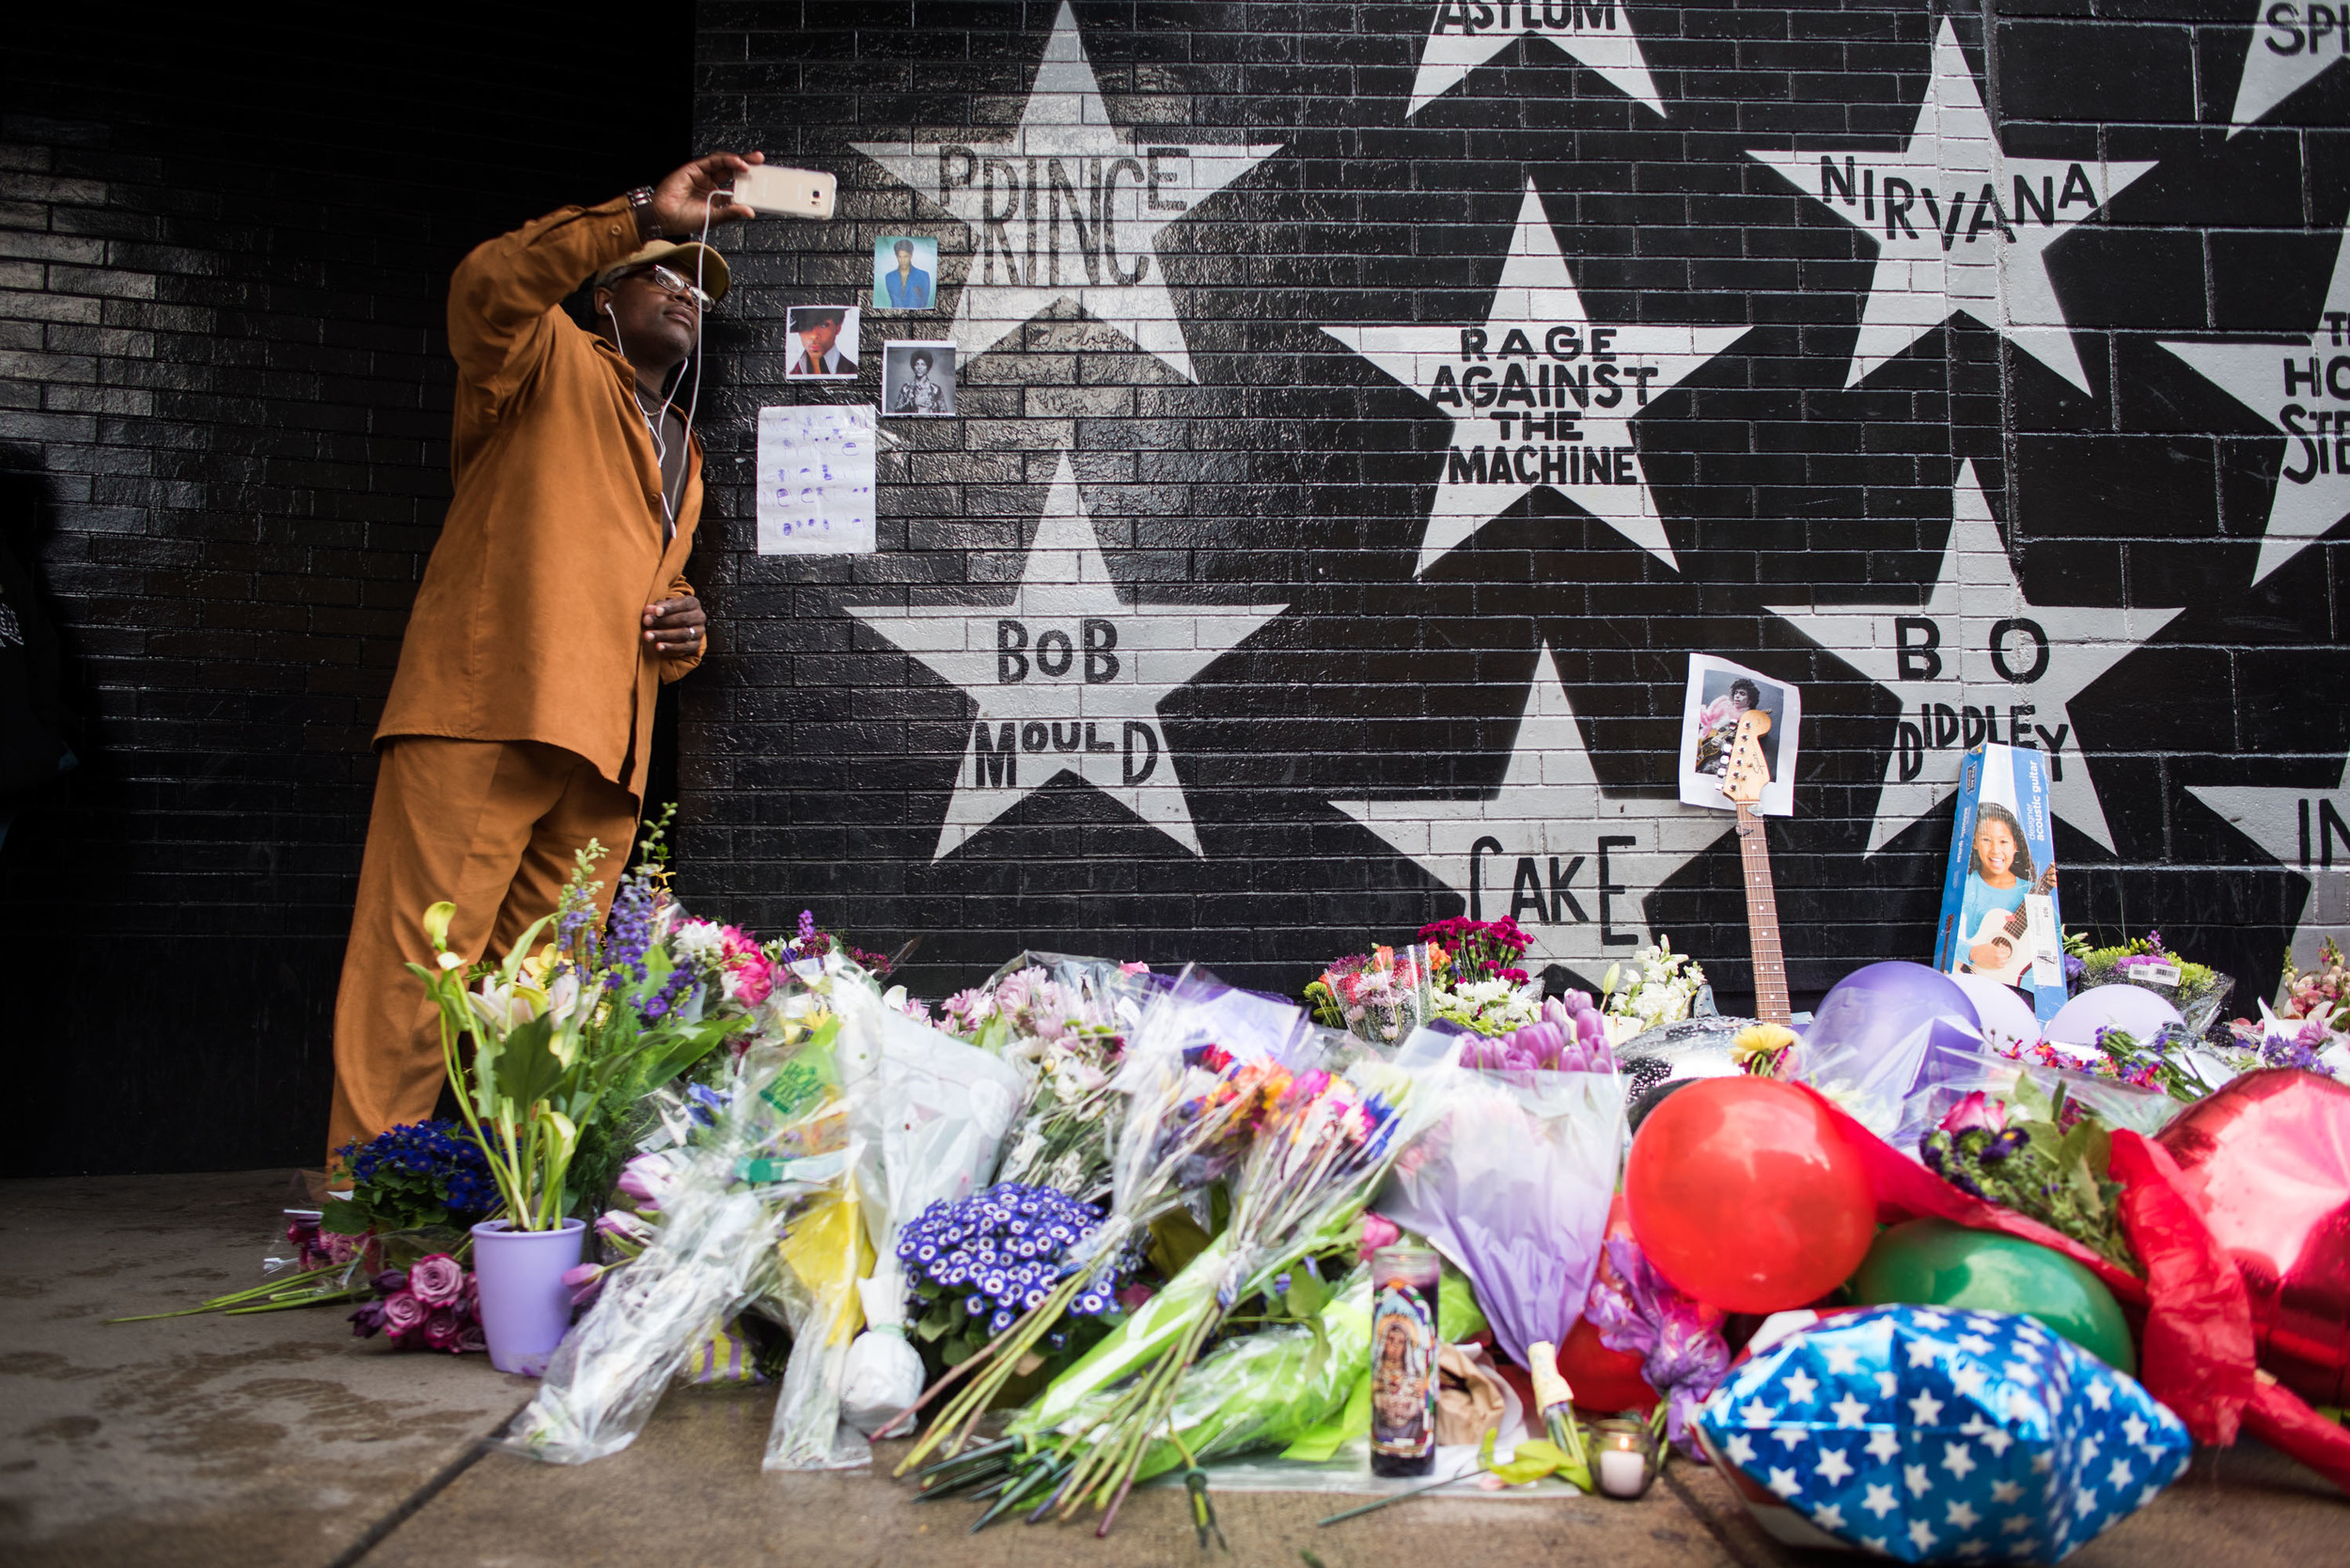 Cederic Riley takes a photo with Prince's star outside of First Ave bellow in downtown Minneapolis. April 21st, 2016.